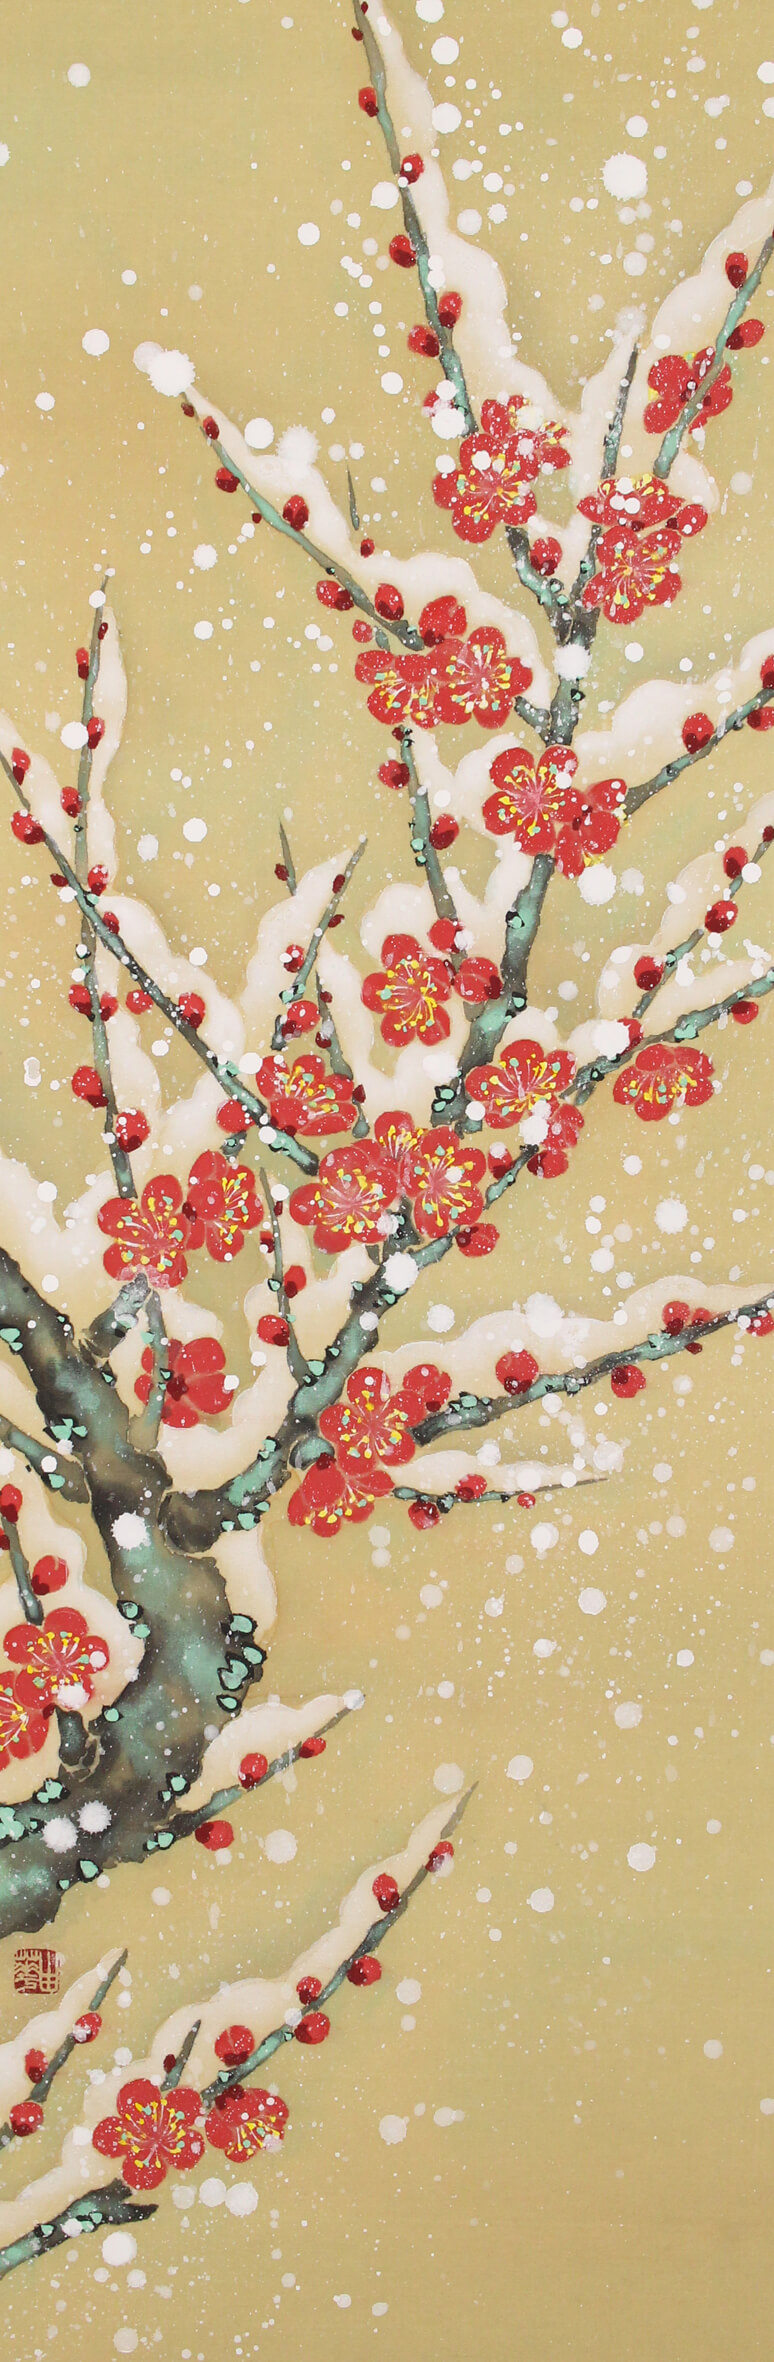 Red plum with snow